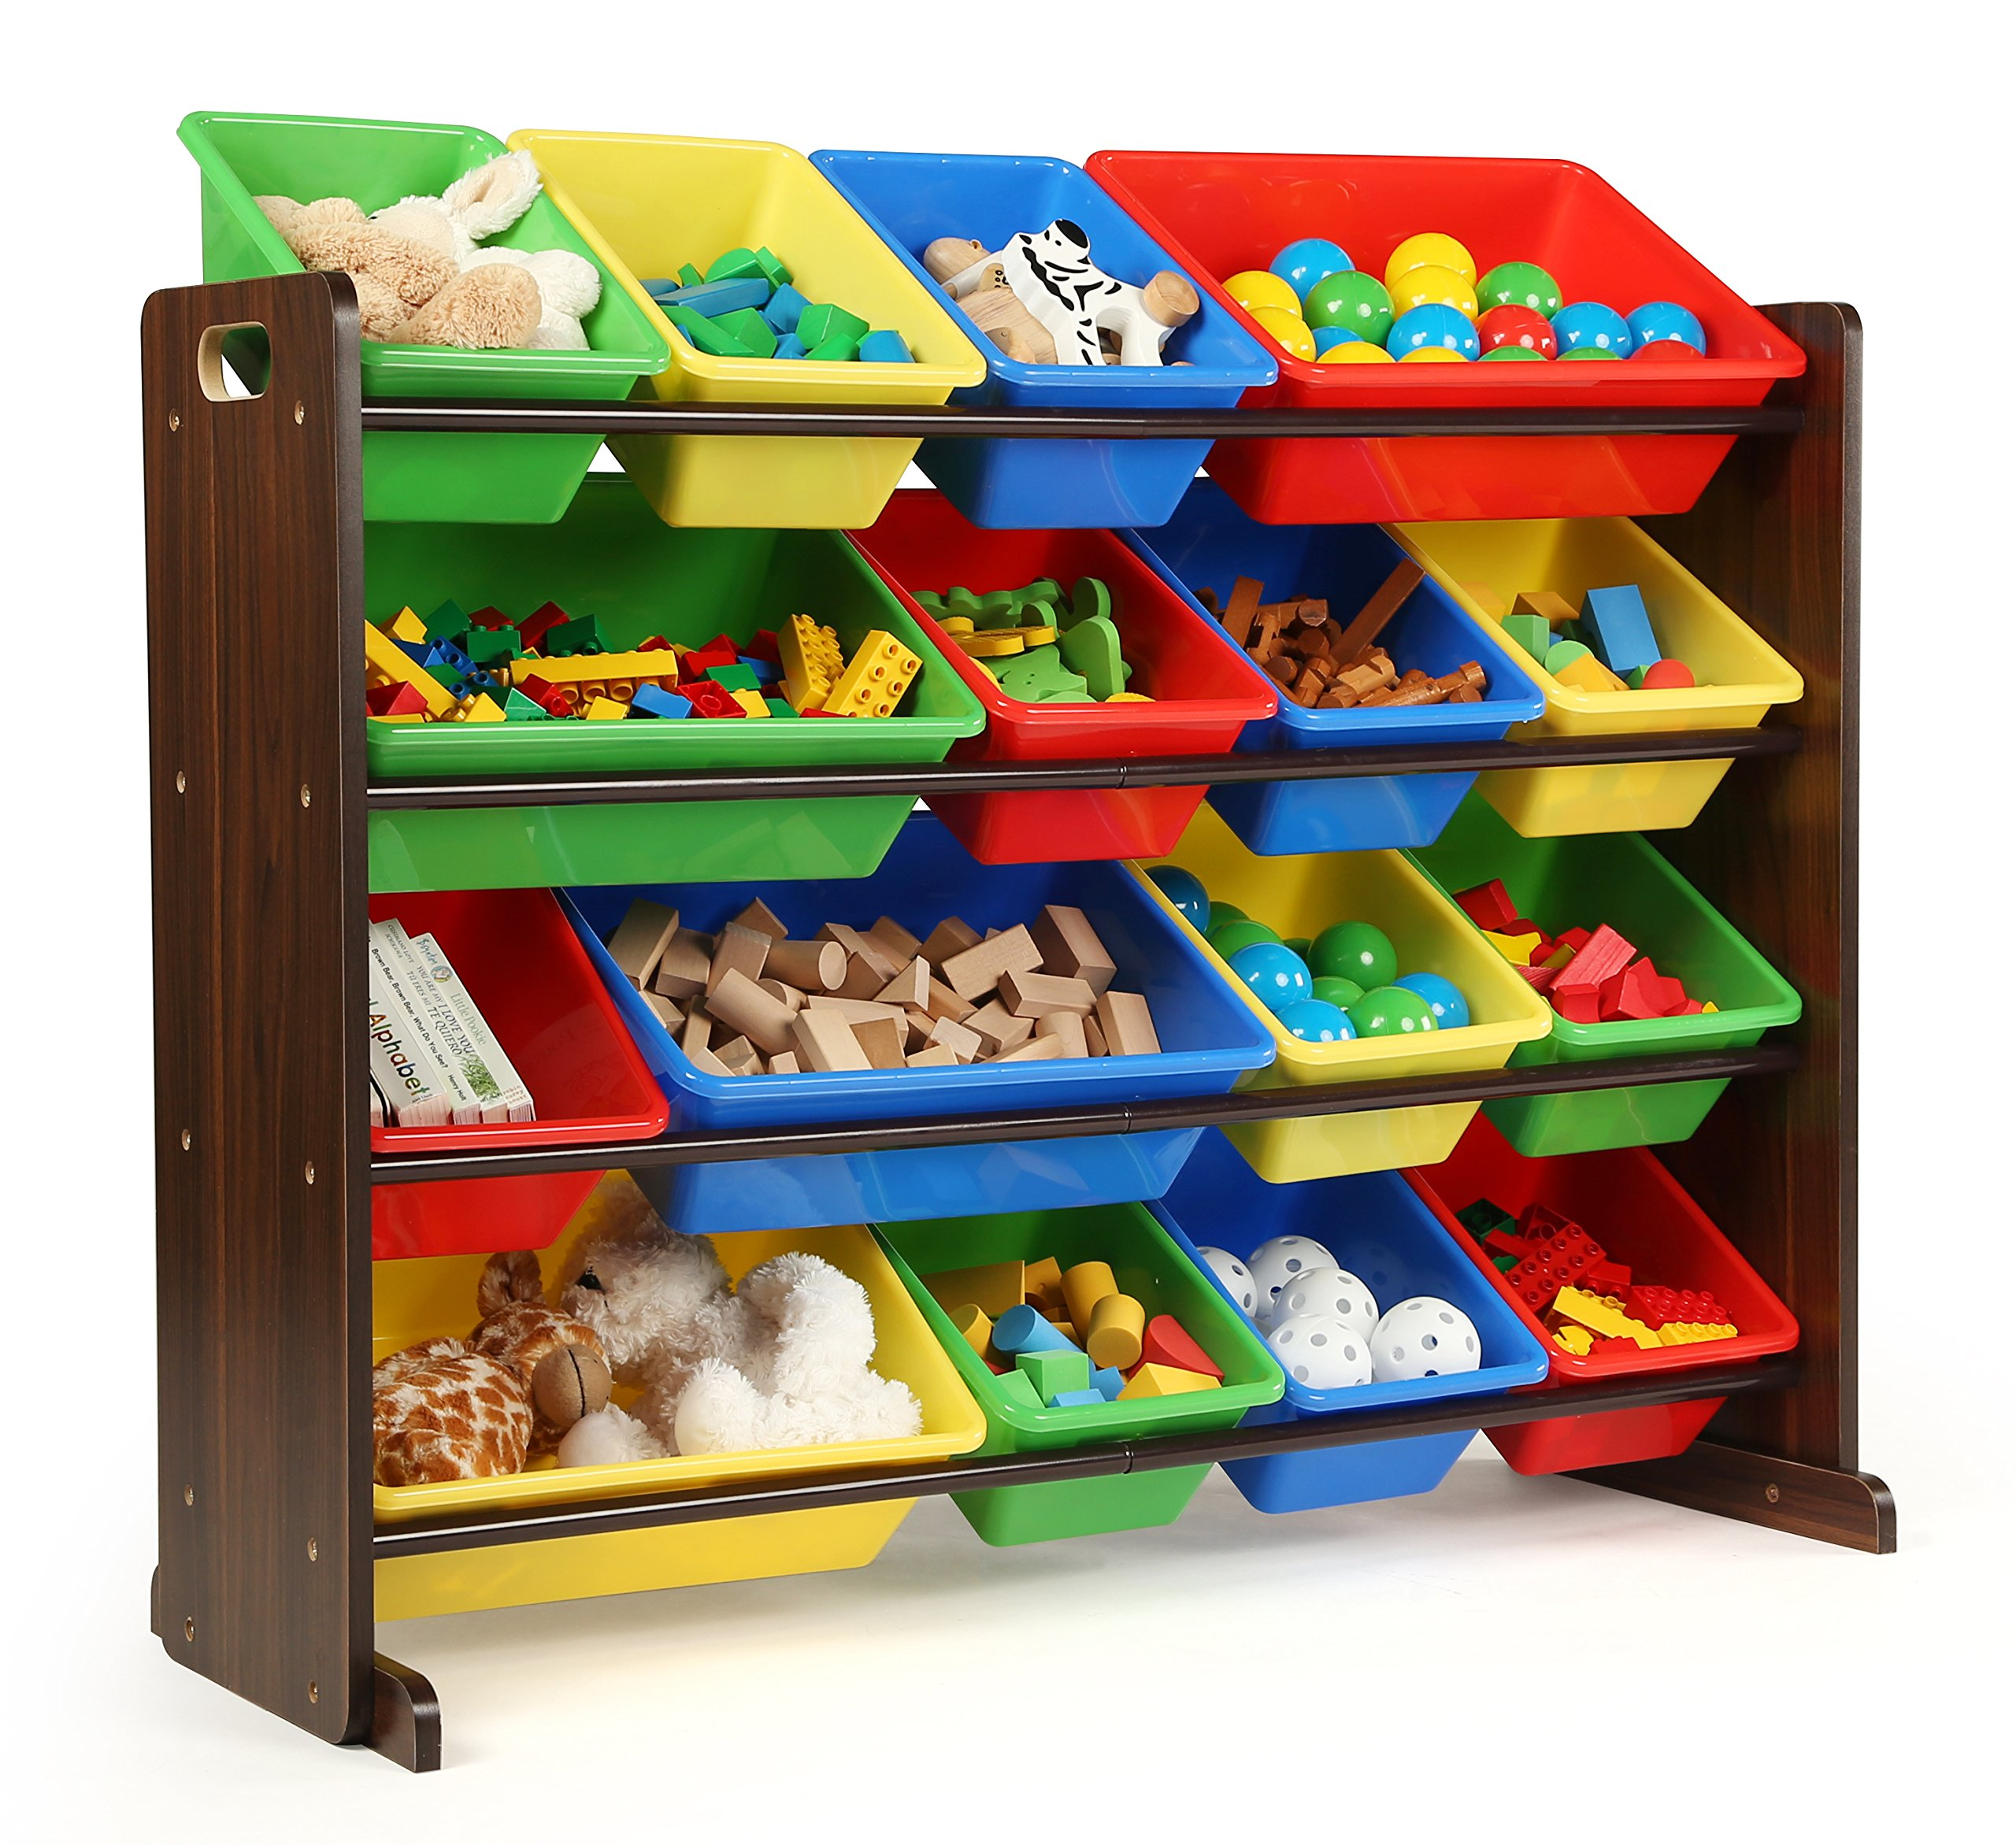 Tot Tutors Discover Collection Supersized Wood Toy Storage Organizer, Toddler, Espresso/Primary by Tot Tutors